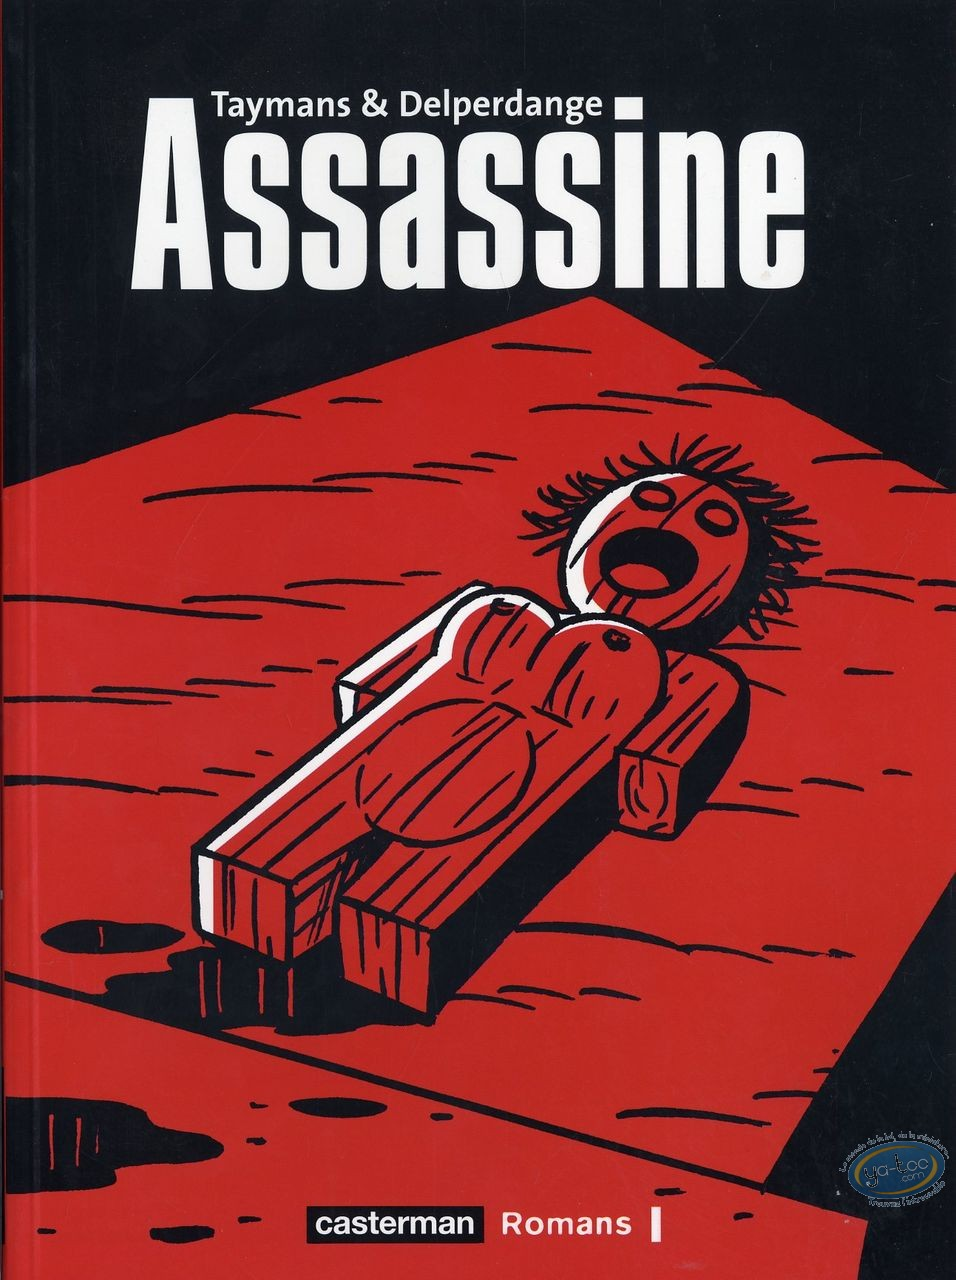 Reduced price European comic books, Assassine : Assassine